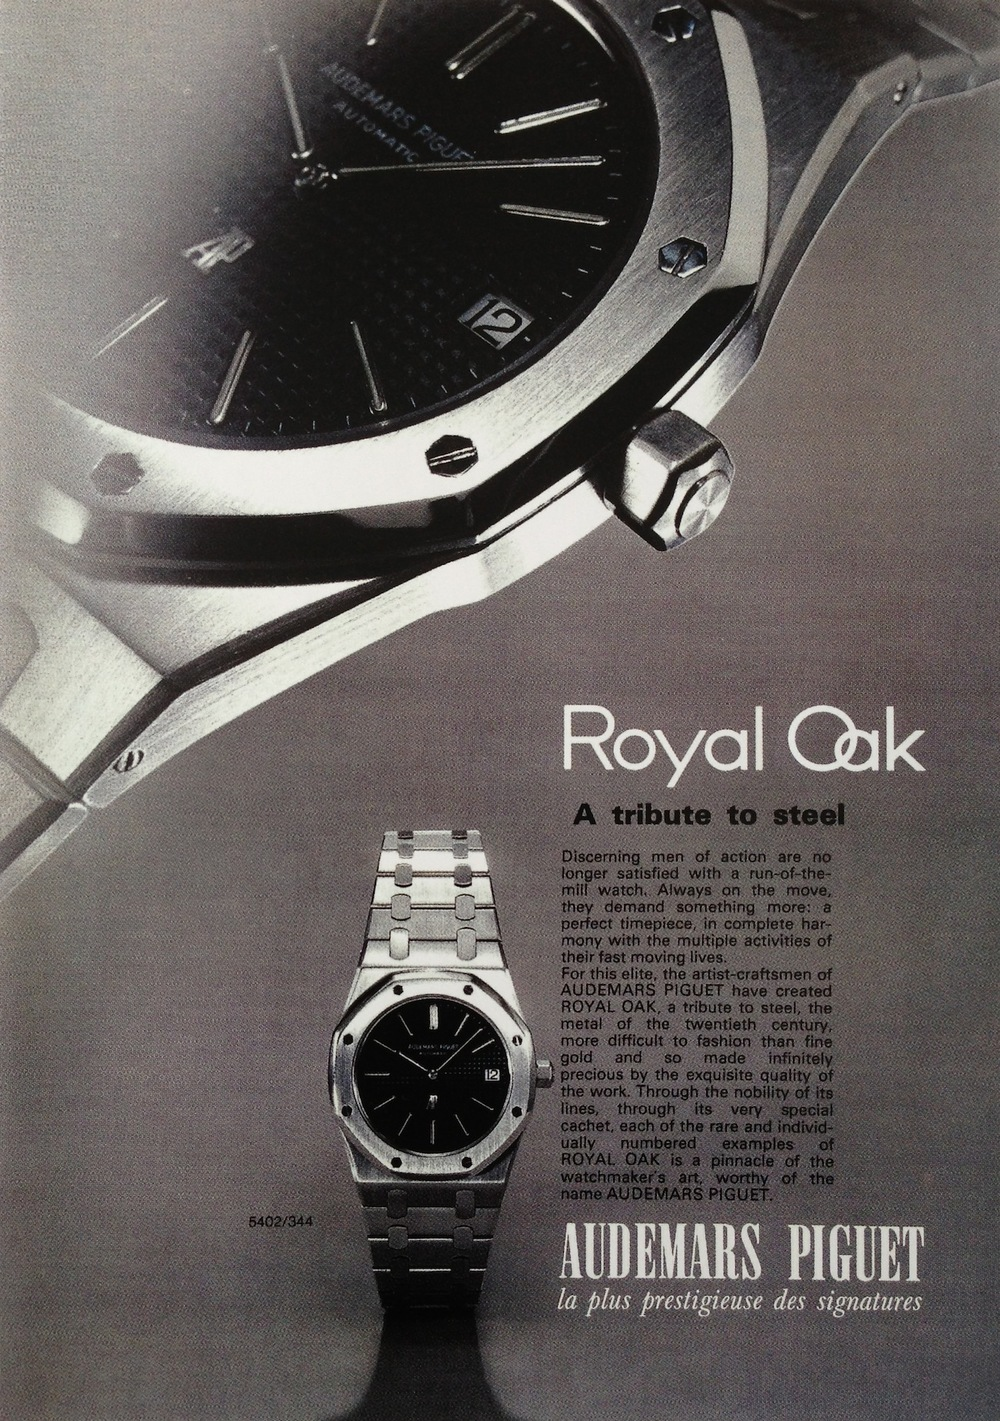 early audemars piguet advertisement Three On Three: Comparing The Vacheron Constantin Overseas, The Piaget Polo S, And The Audemars Piguet Royal Oak 15400 Three On Three: Comparing The Vacheron Constantin Overseas, The Piaget Polo S, And The Audemars Piguet Royal Oak 15400 Pasted image at 2017 02 06 05 59 PM